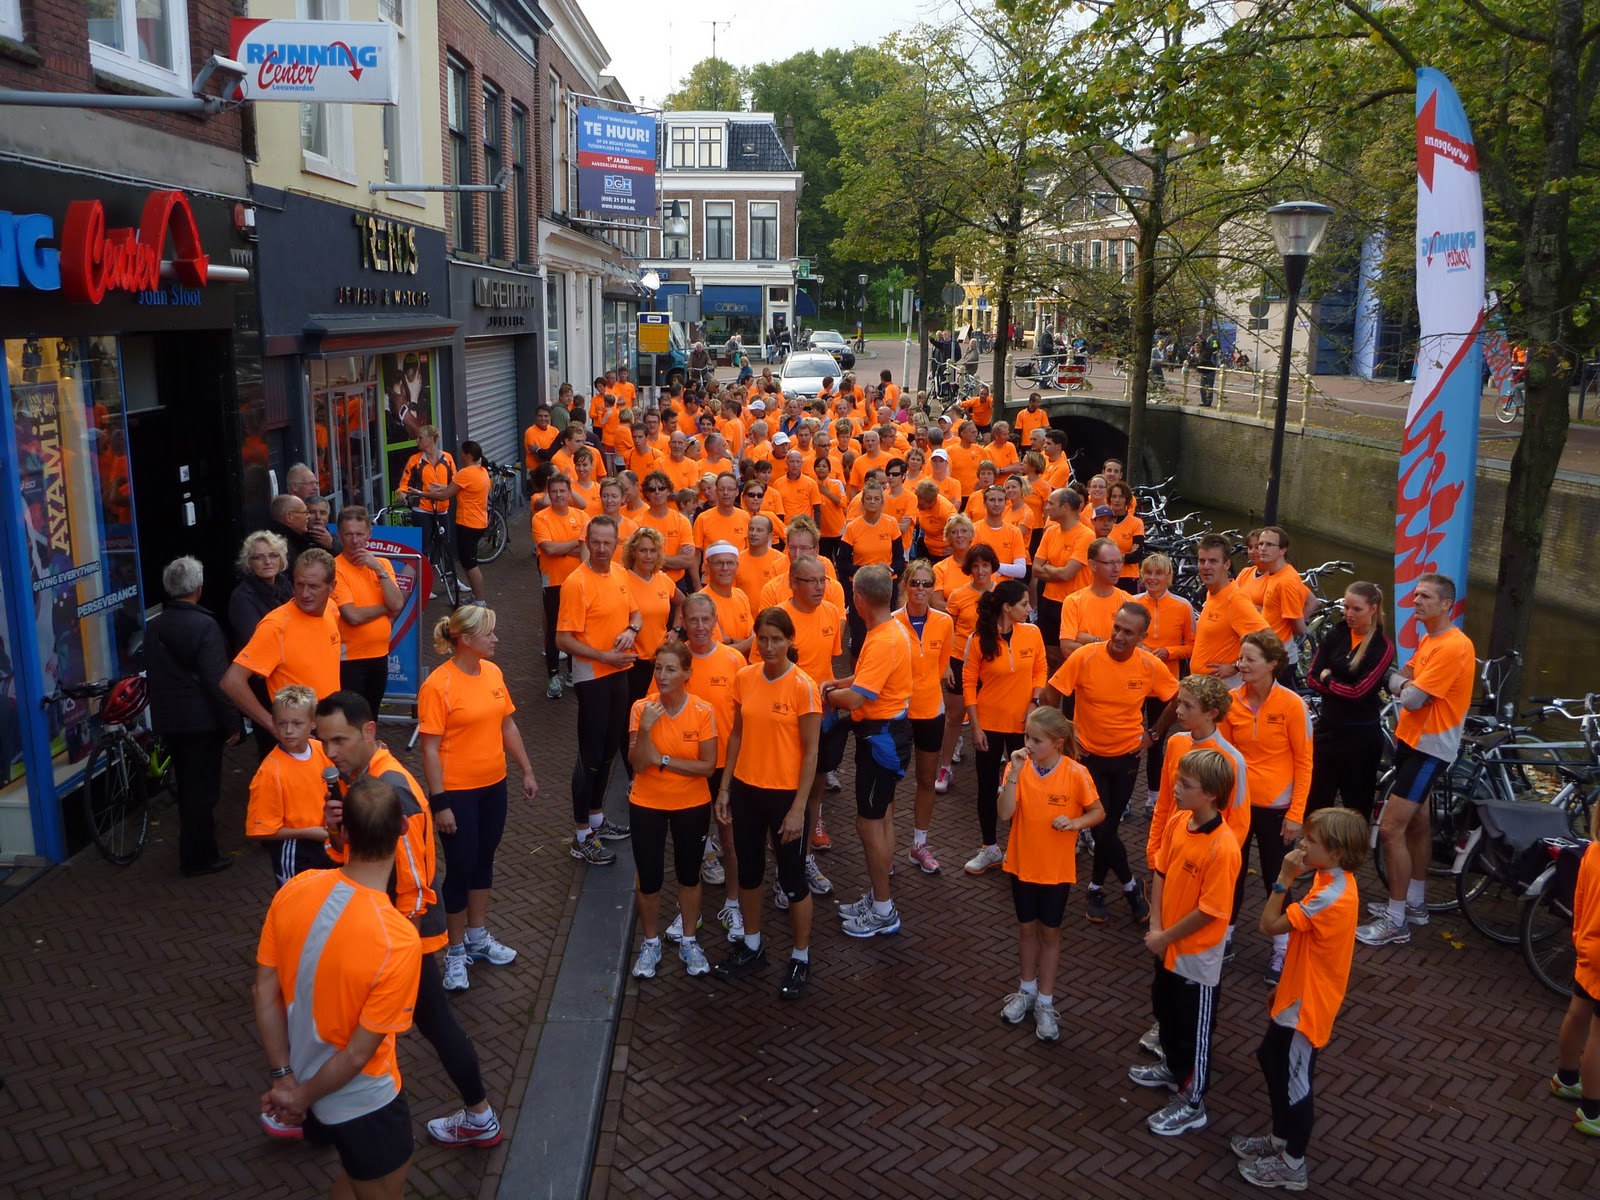 Nuts for sports: running center leeuwarden presents.... de saugony ...